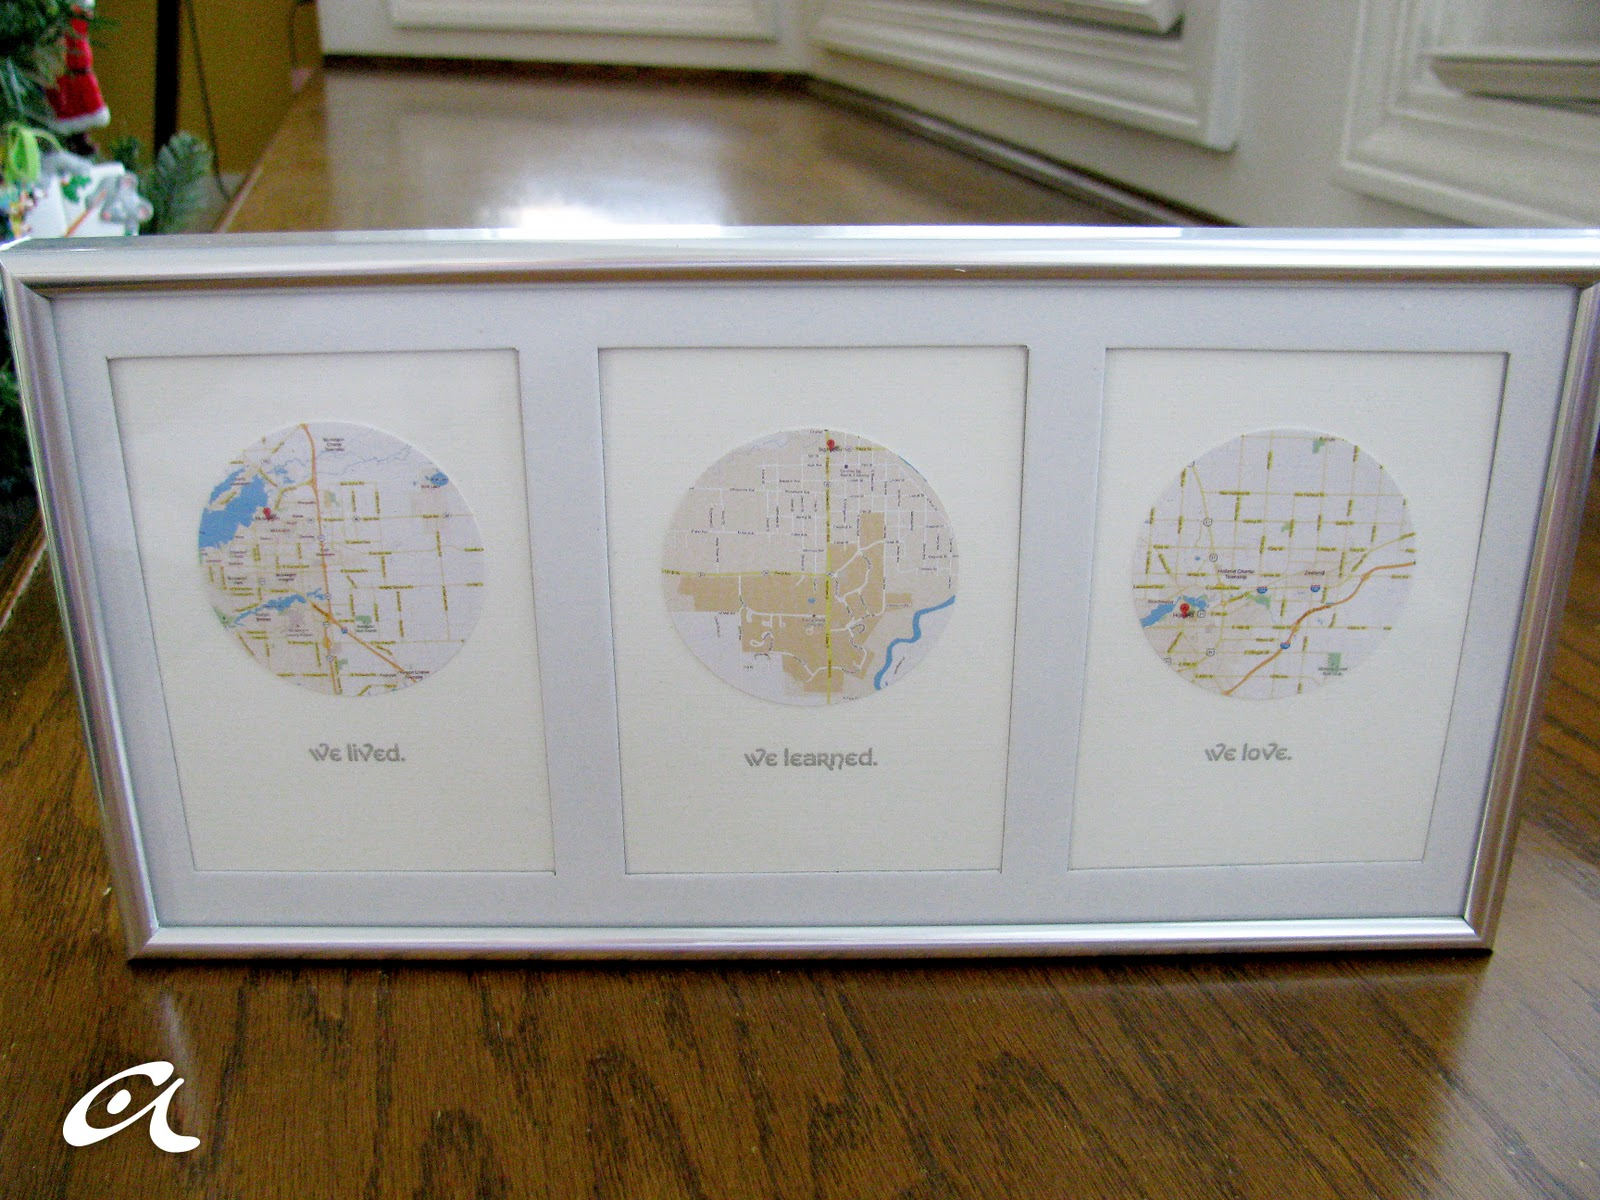 Andrea Arch: DIY: Map art on life map art, pinterest map art, diy alice in wonderland cake, map wall art, diy gifts for men, wood map art, framed map art, event art, usa map art, diy decorate with maps, map canvas art, recycled map art, mind map art, vintage map art, etsy map art, united states map art, diy glass painting ideas, steampunk map art, diy one year anniversary gifts, travel map art,